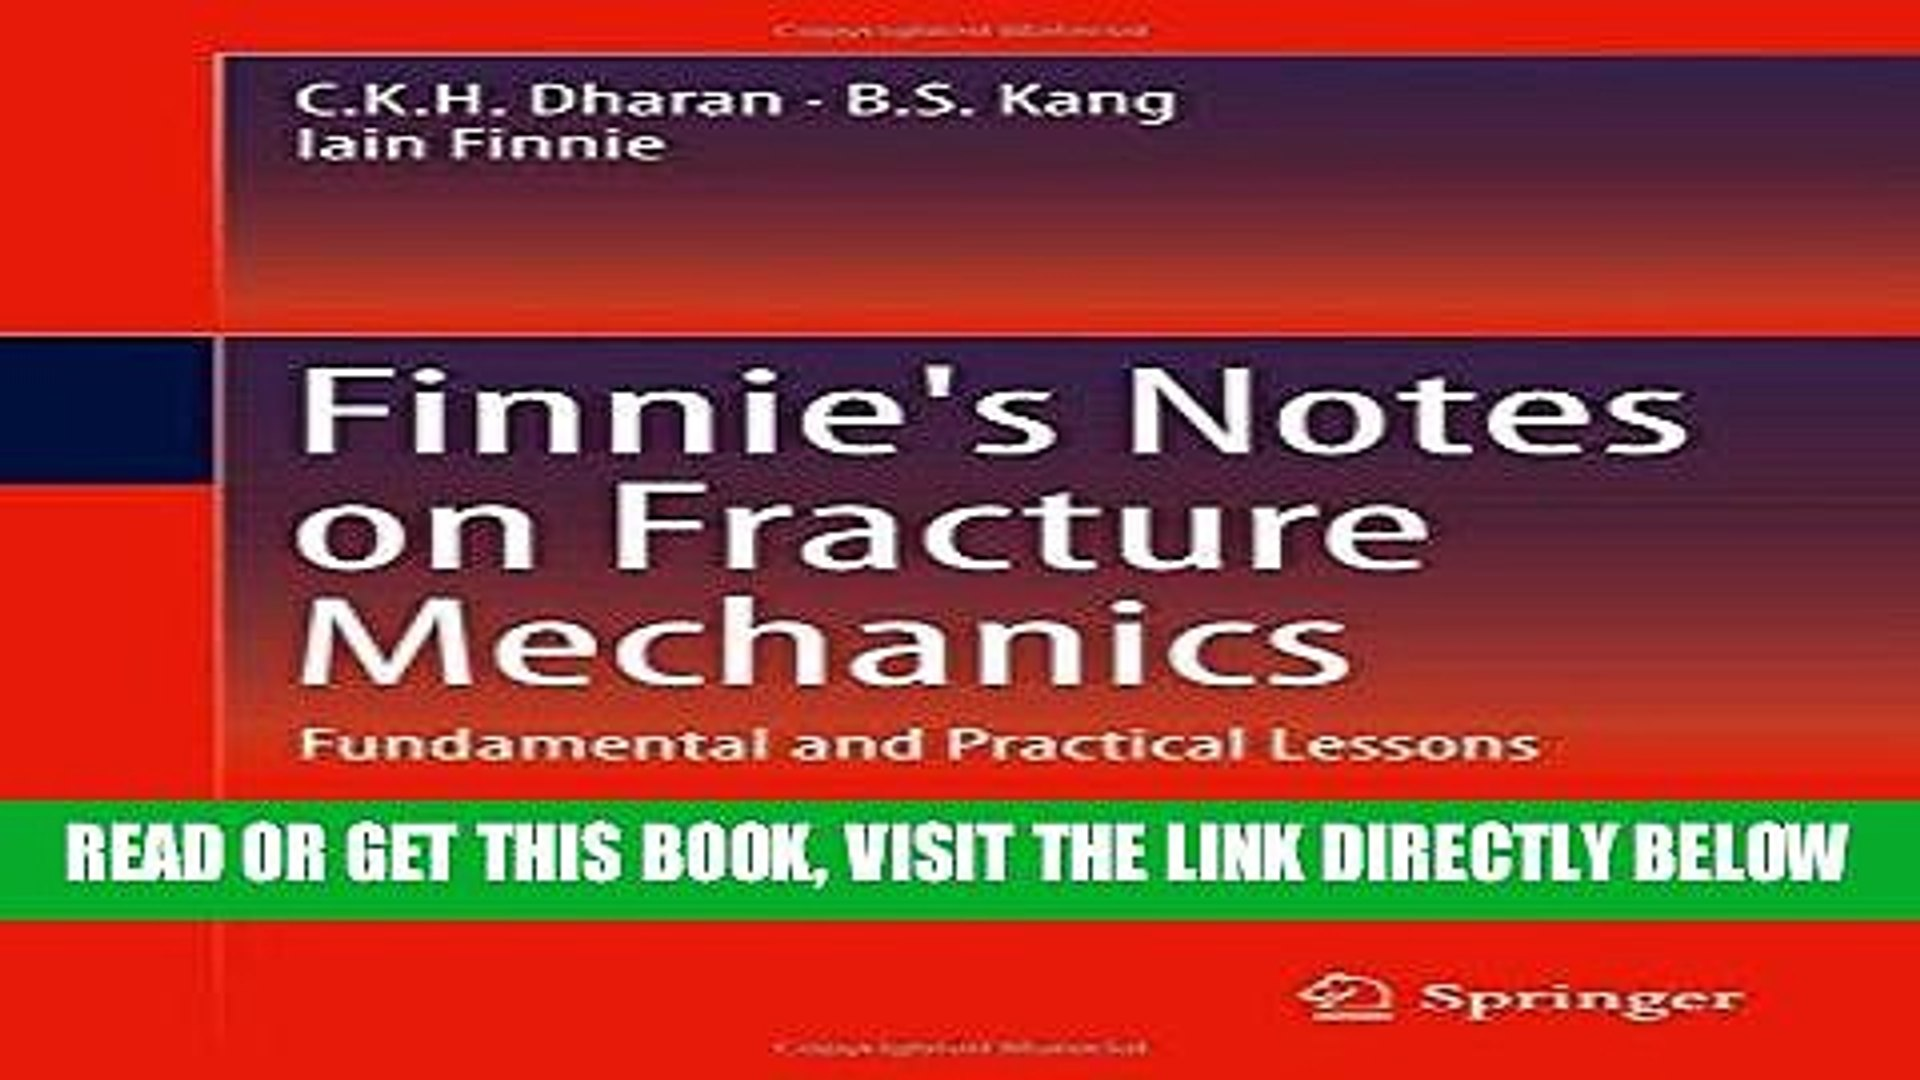 Finnies Notes on Fracture Mechanics: Fundamental and Practical Lessons